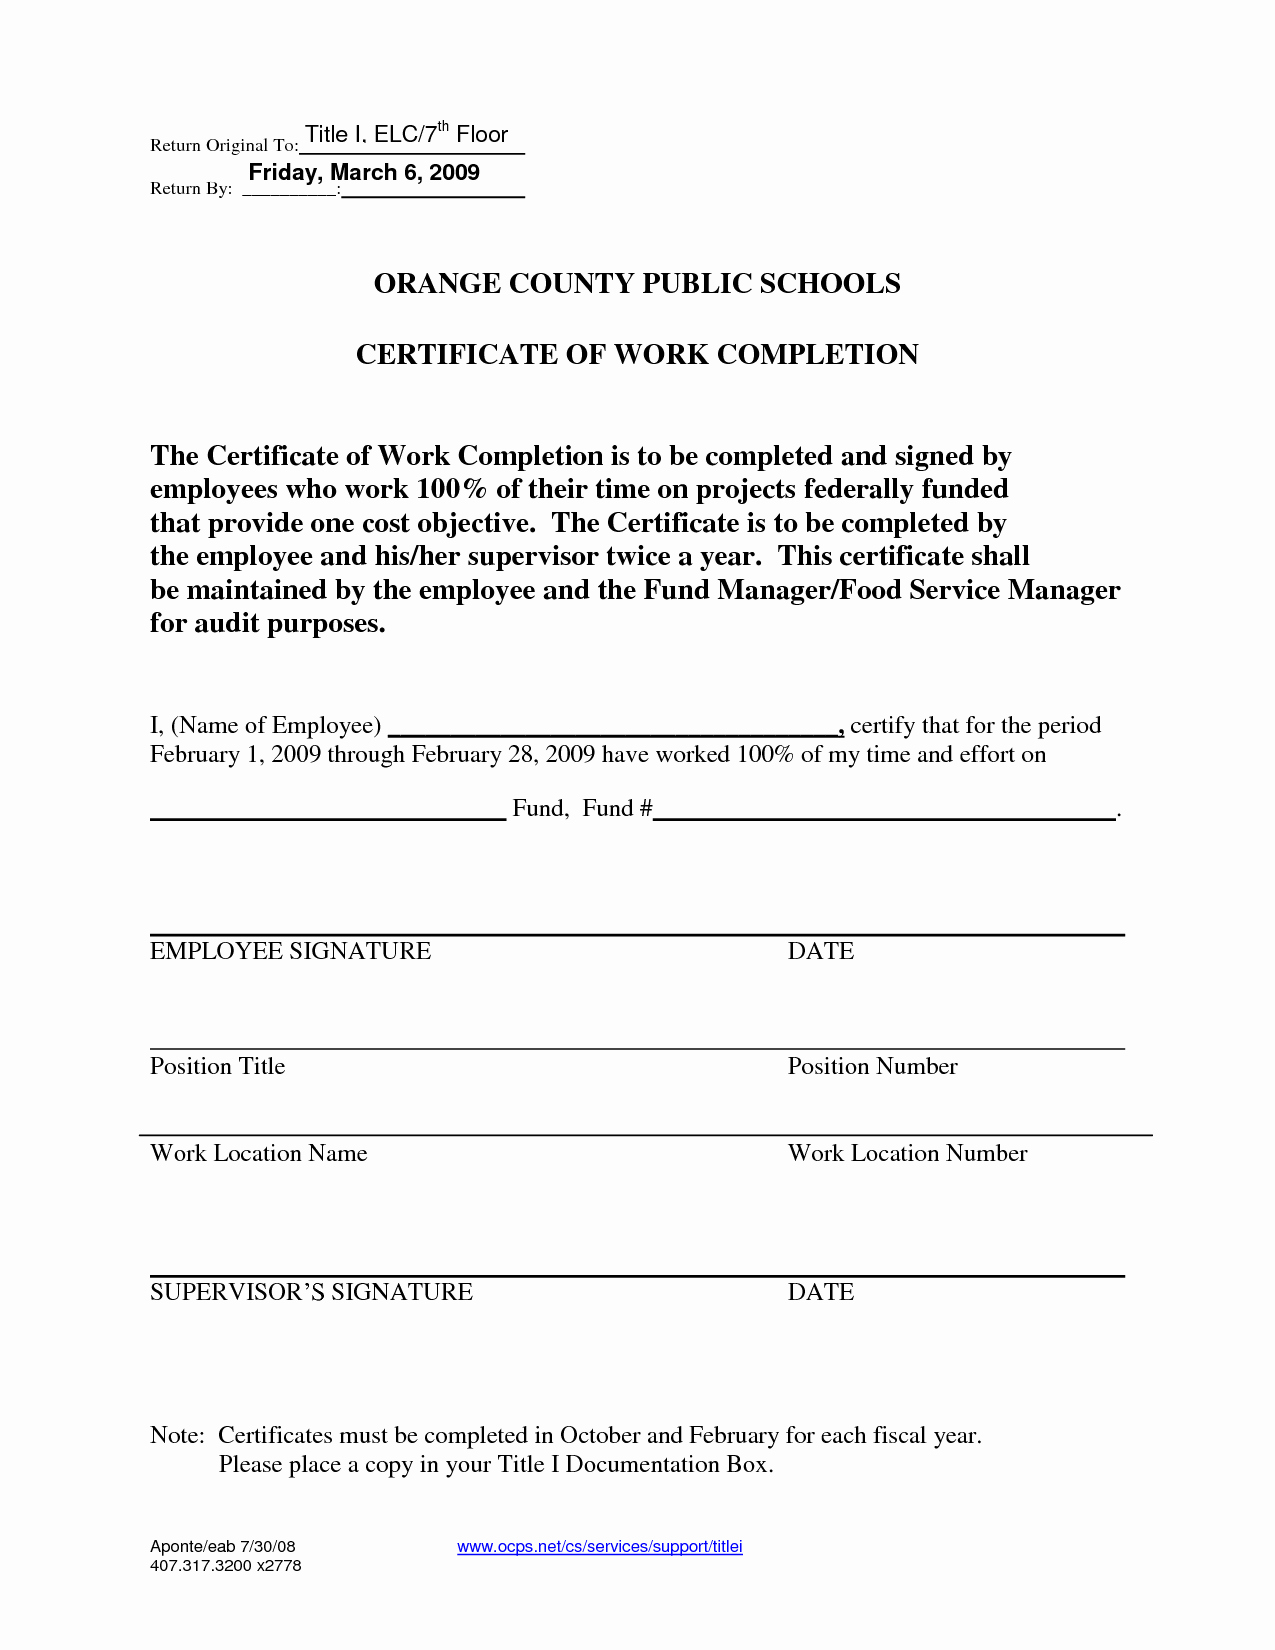 Work Completed form Template Unique Certificate Work Pletion Free Printable Documents